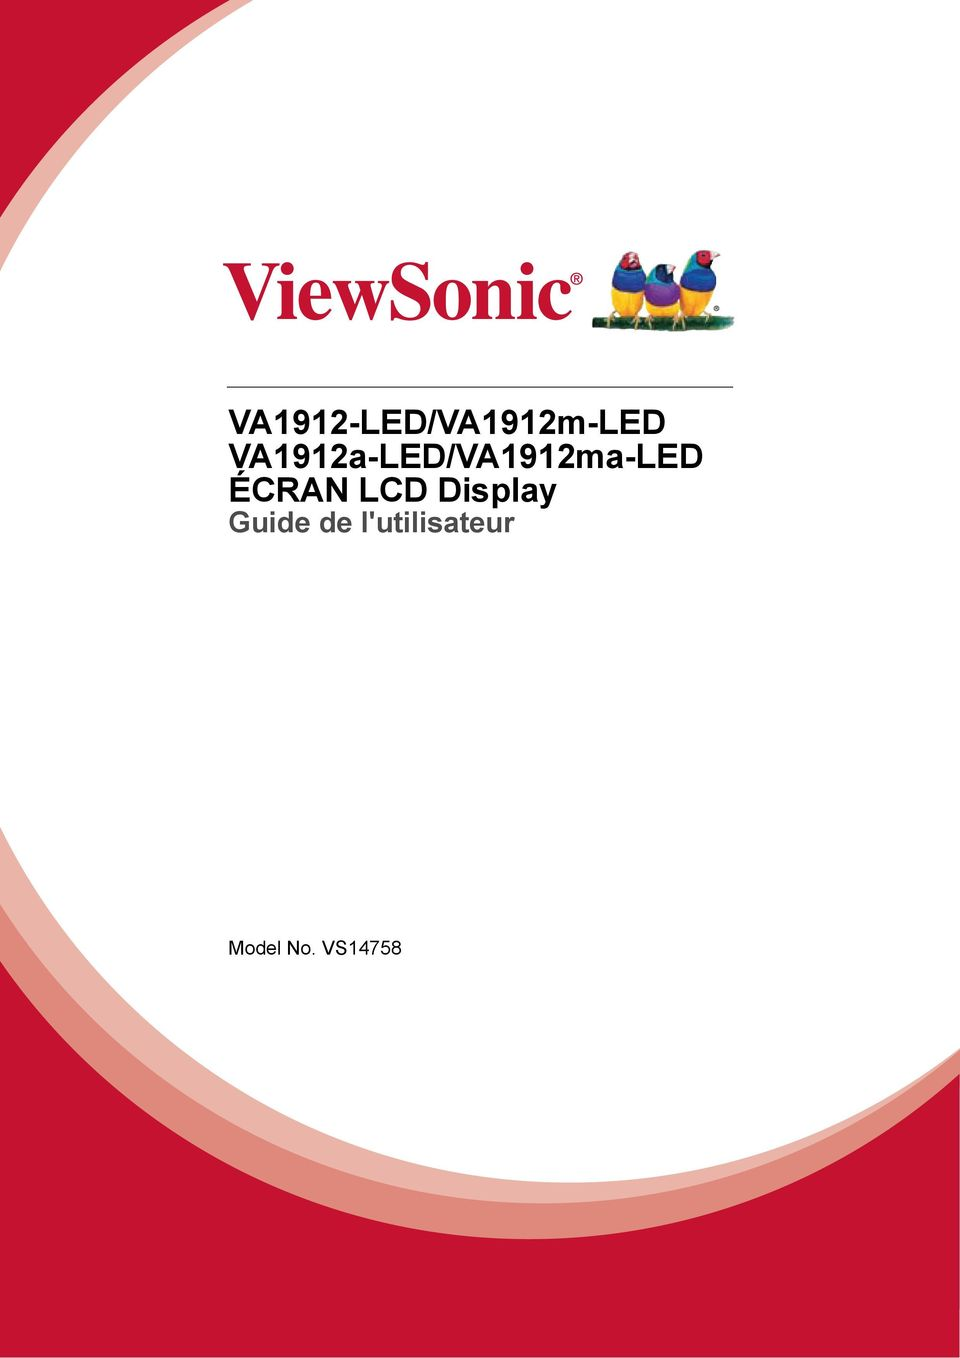 ÉCRAN LCD Display Guide de